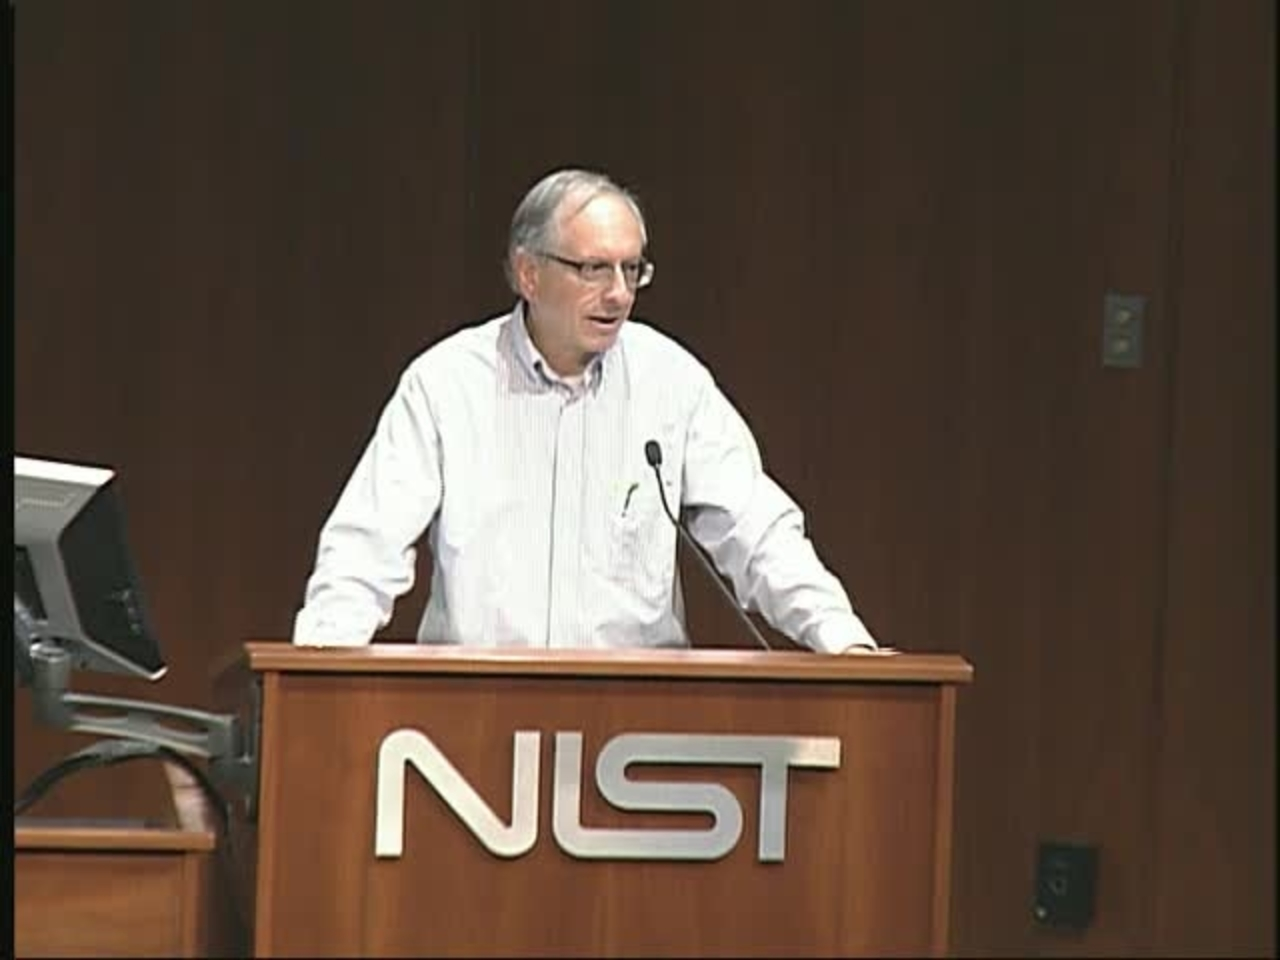 NIST, Engineering Laboratory and Disaster Resilience: 2019 Disaster Resilience Symposium